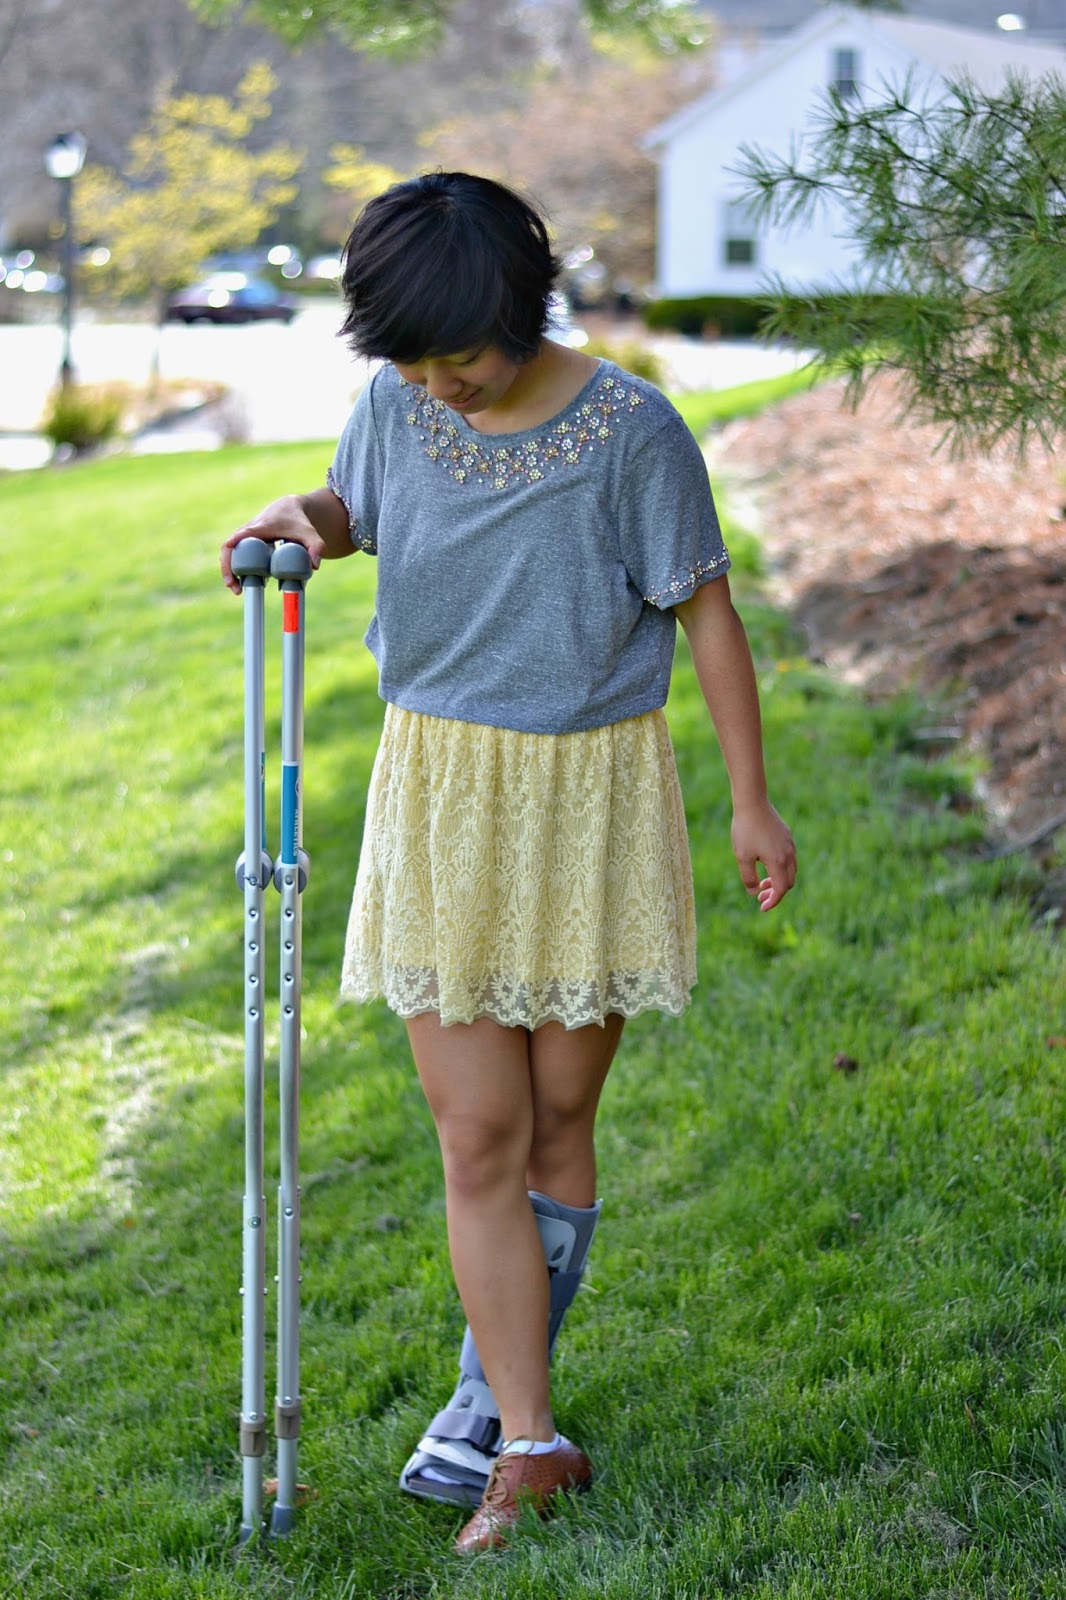 dressing with crutches and walking boot